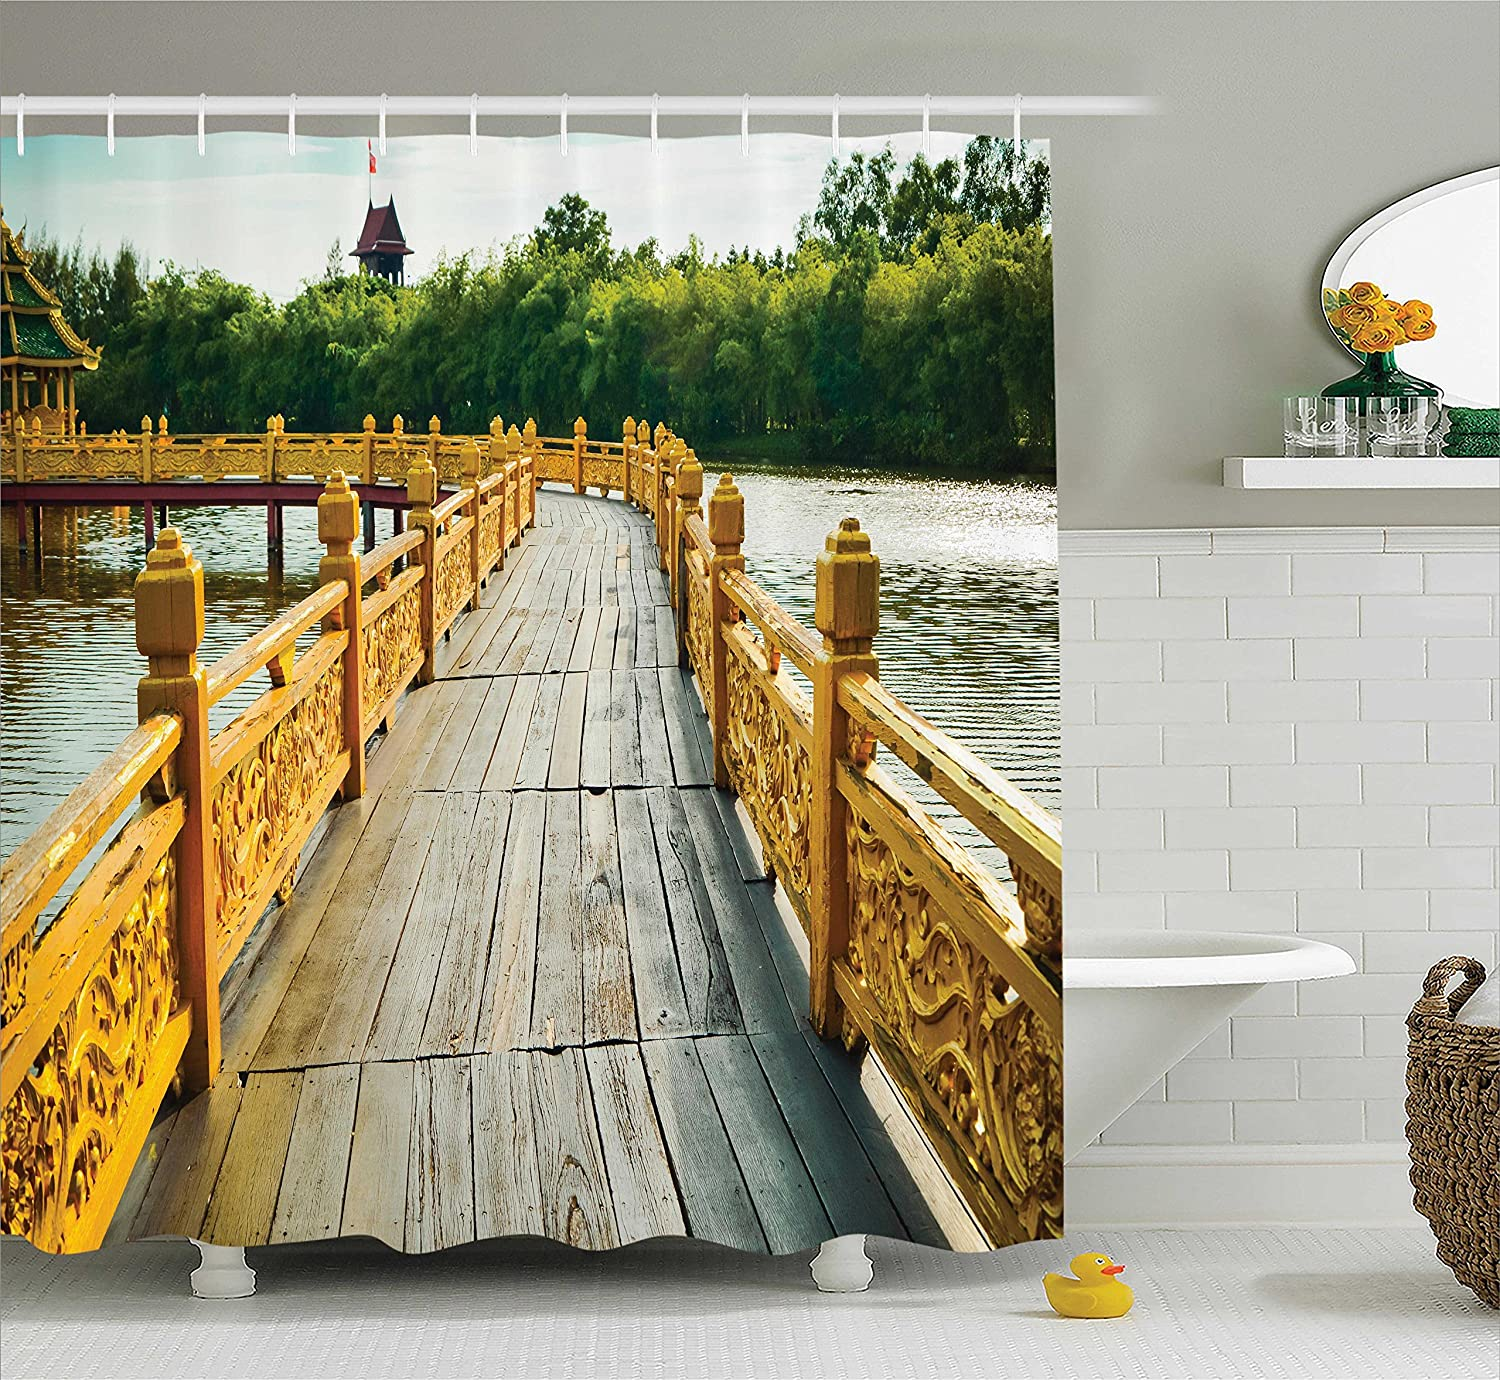 Bathroom Accessories Ambesonne Surf Decor Shower Curtain Set Brown Yellow Surfboard Illustration with Flowers Riding Waves On The Surface of The Water Theme 69W X 70L inches